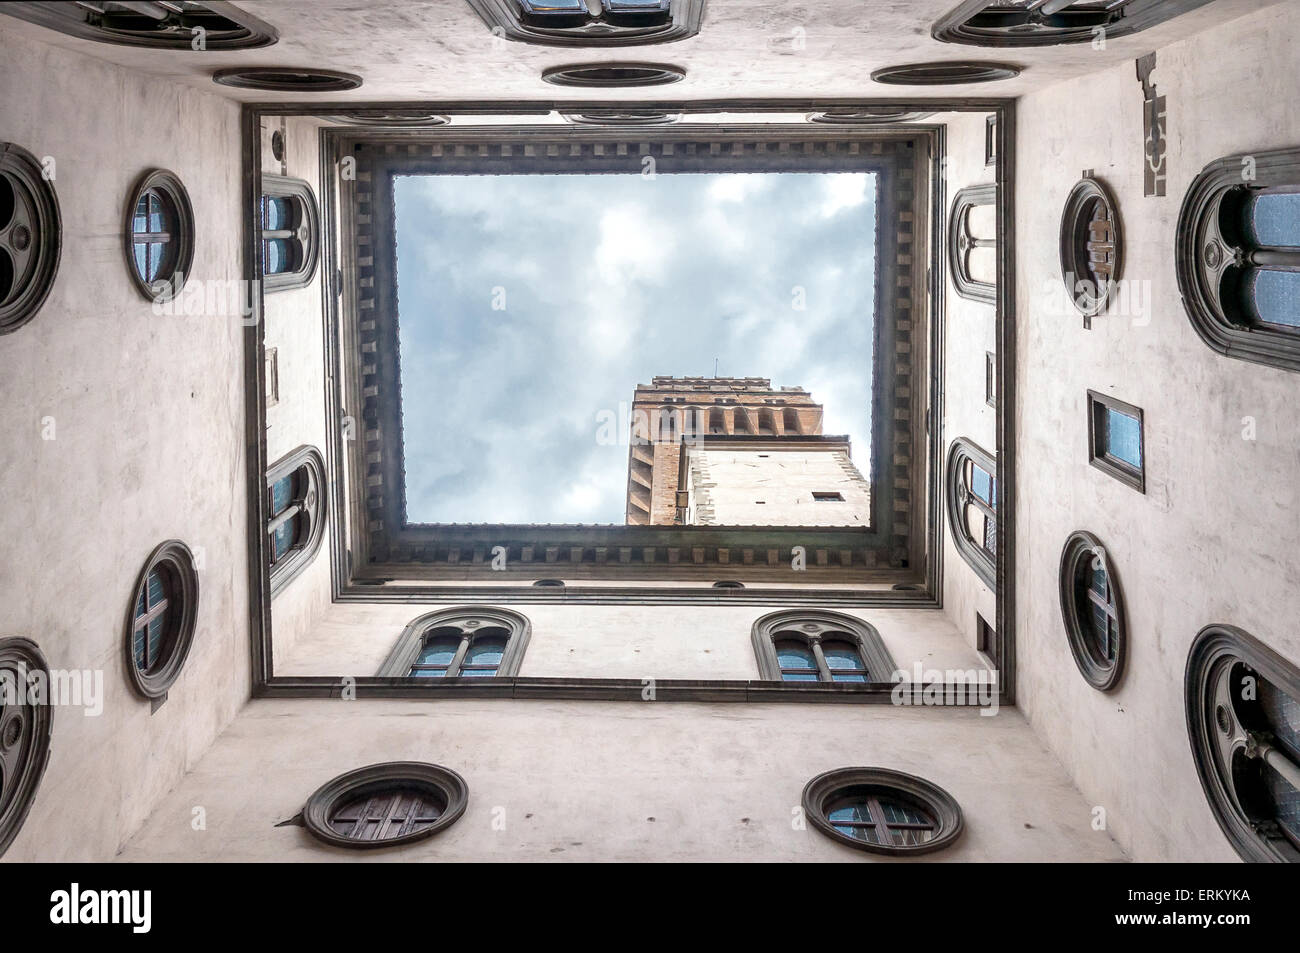 Palazzo Vecchio architecture and geometries seen from courtyard in Florence, Italy. - Stock Image